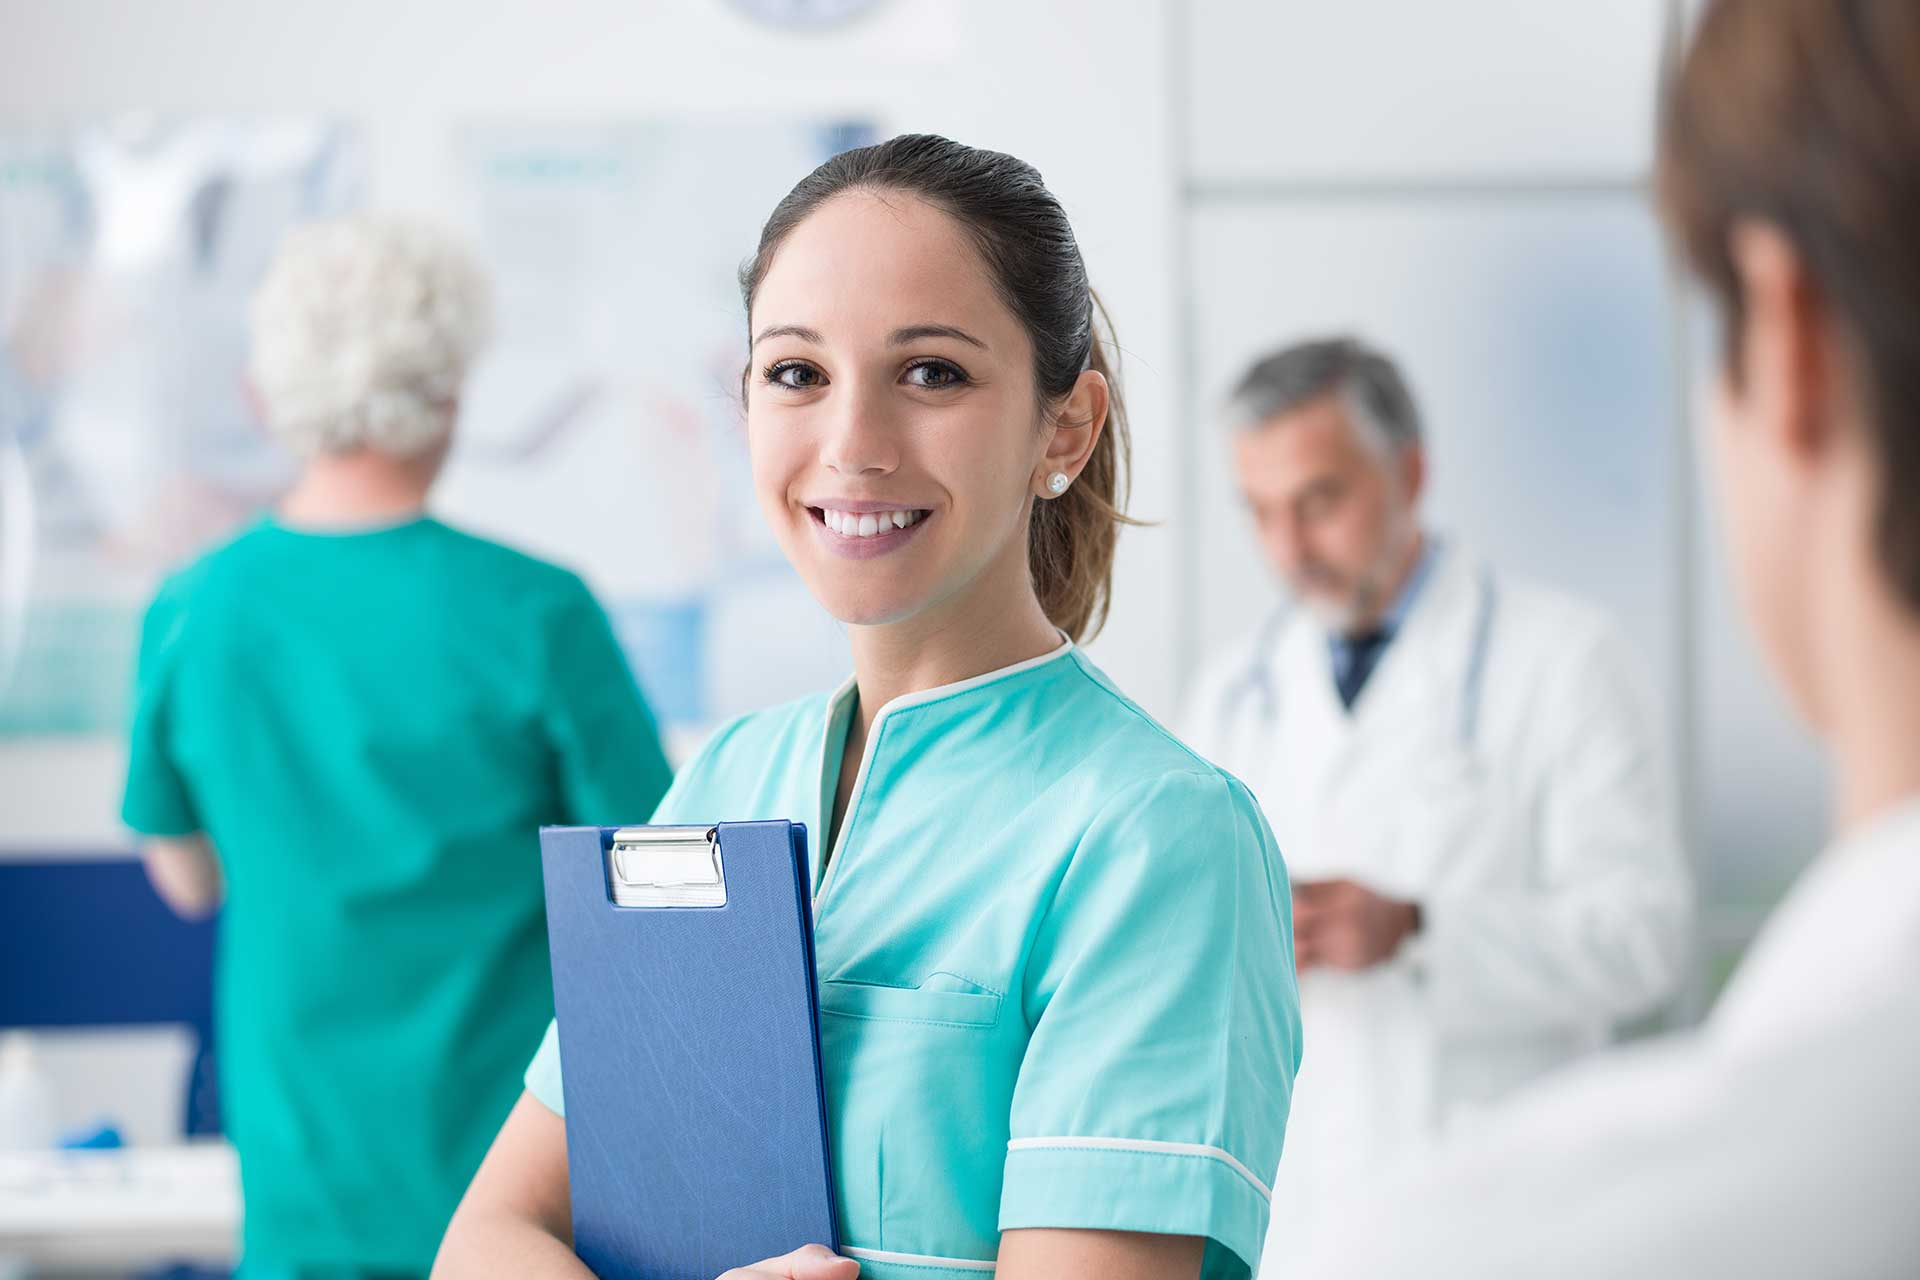 Nurse holding file to her chest and looking at camera in blurred background of hospital setting